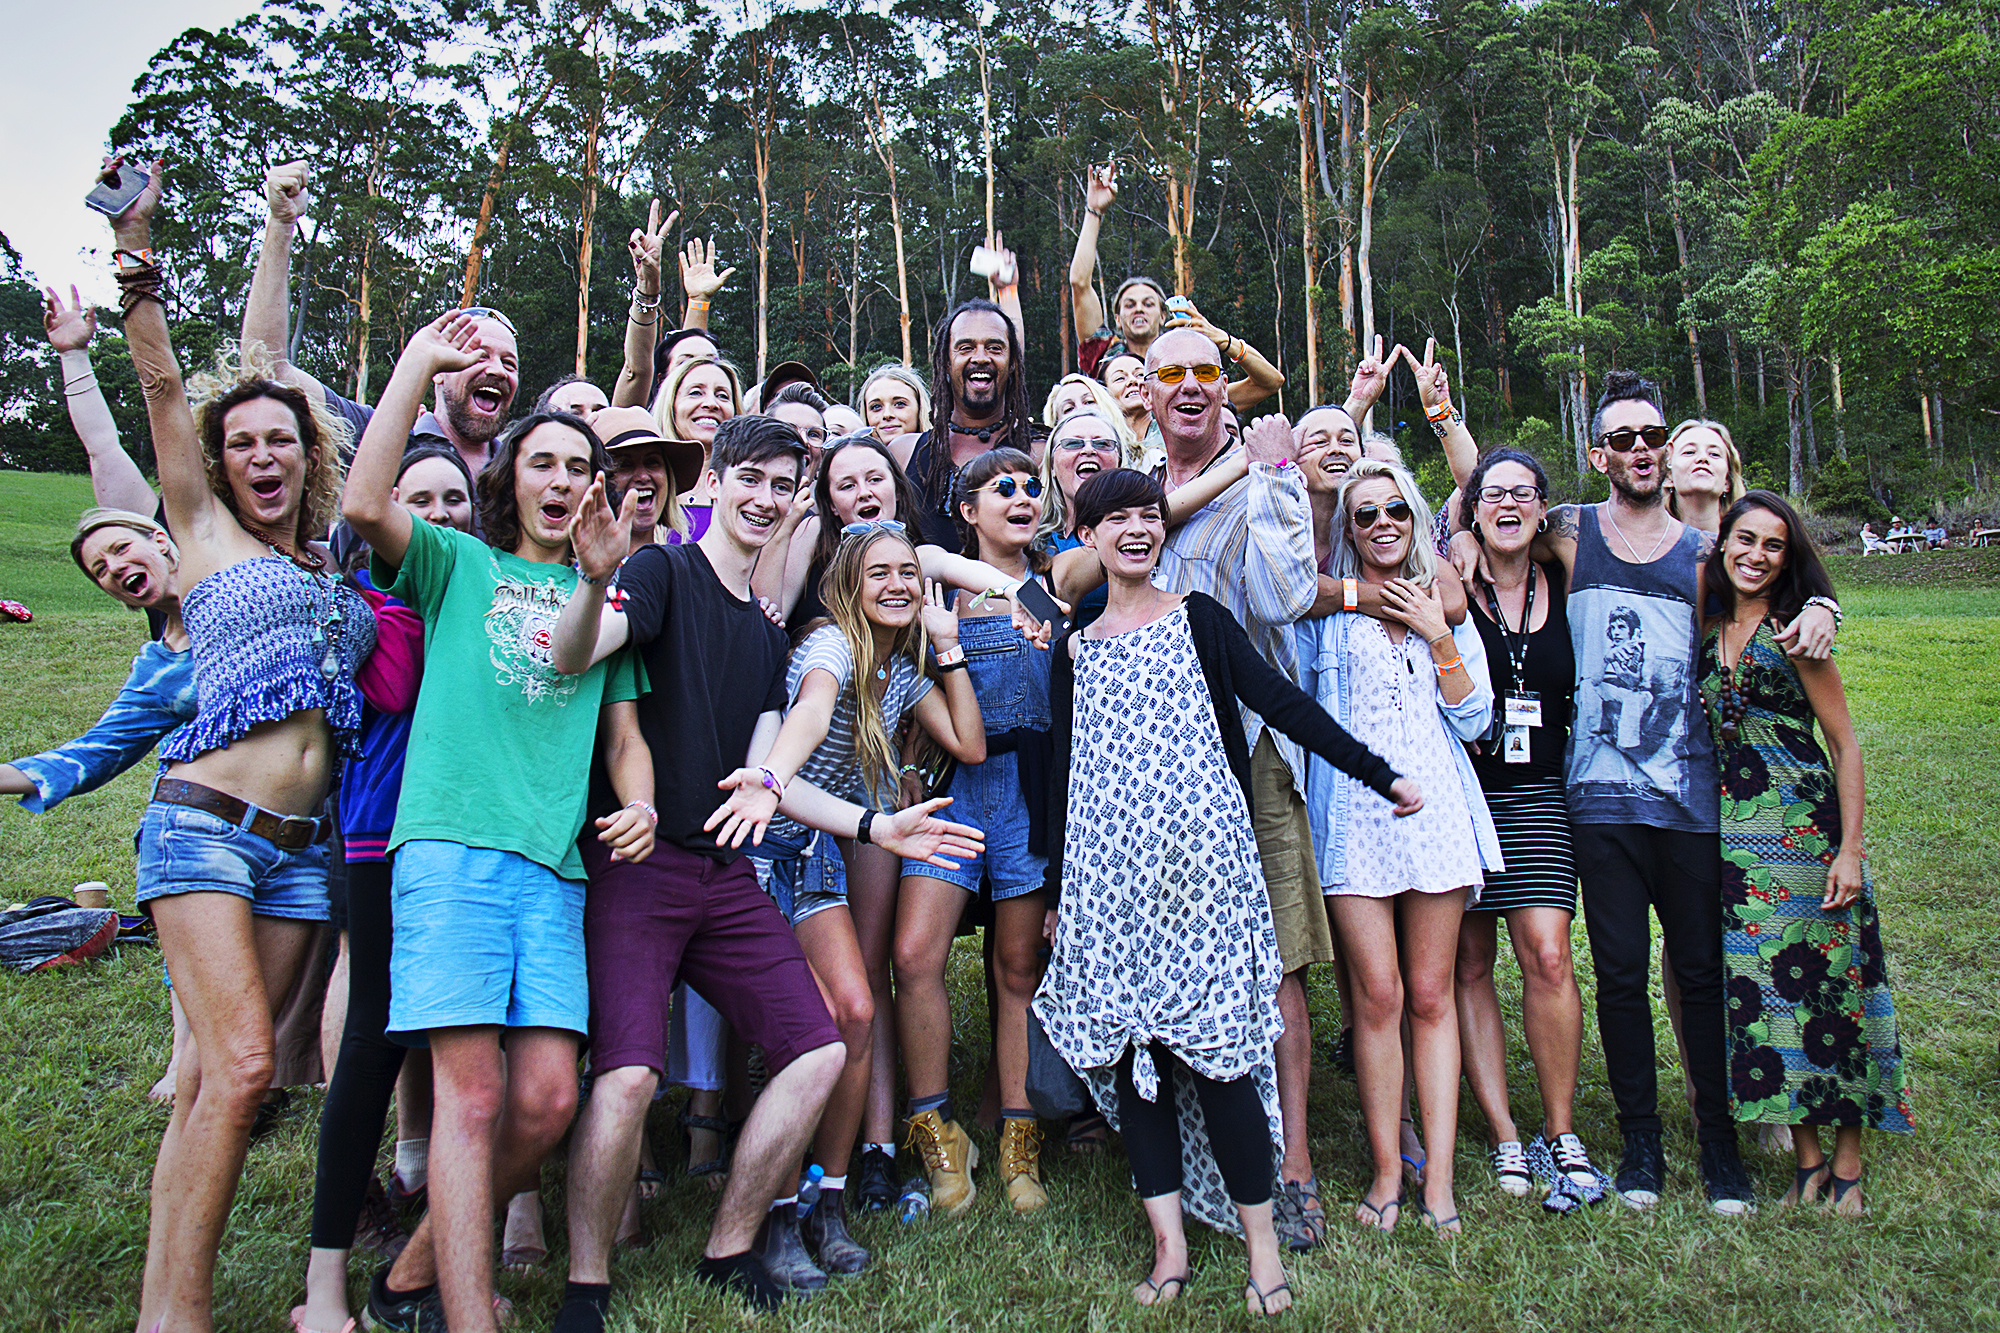 Michael Franti & friends | Woodford Folk Festival 2015/2016